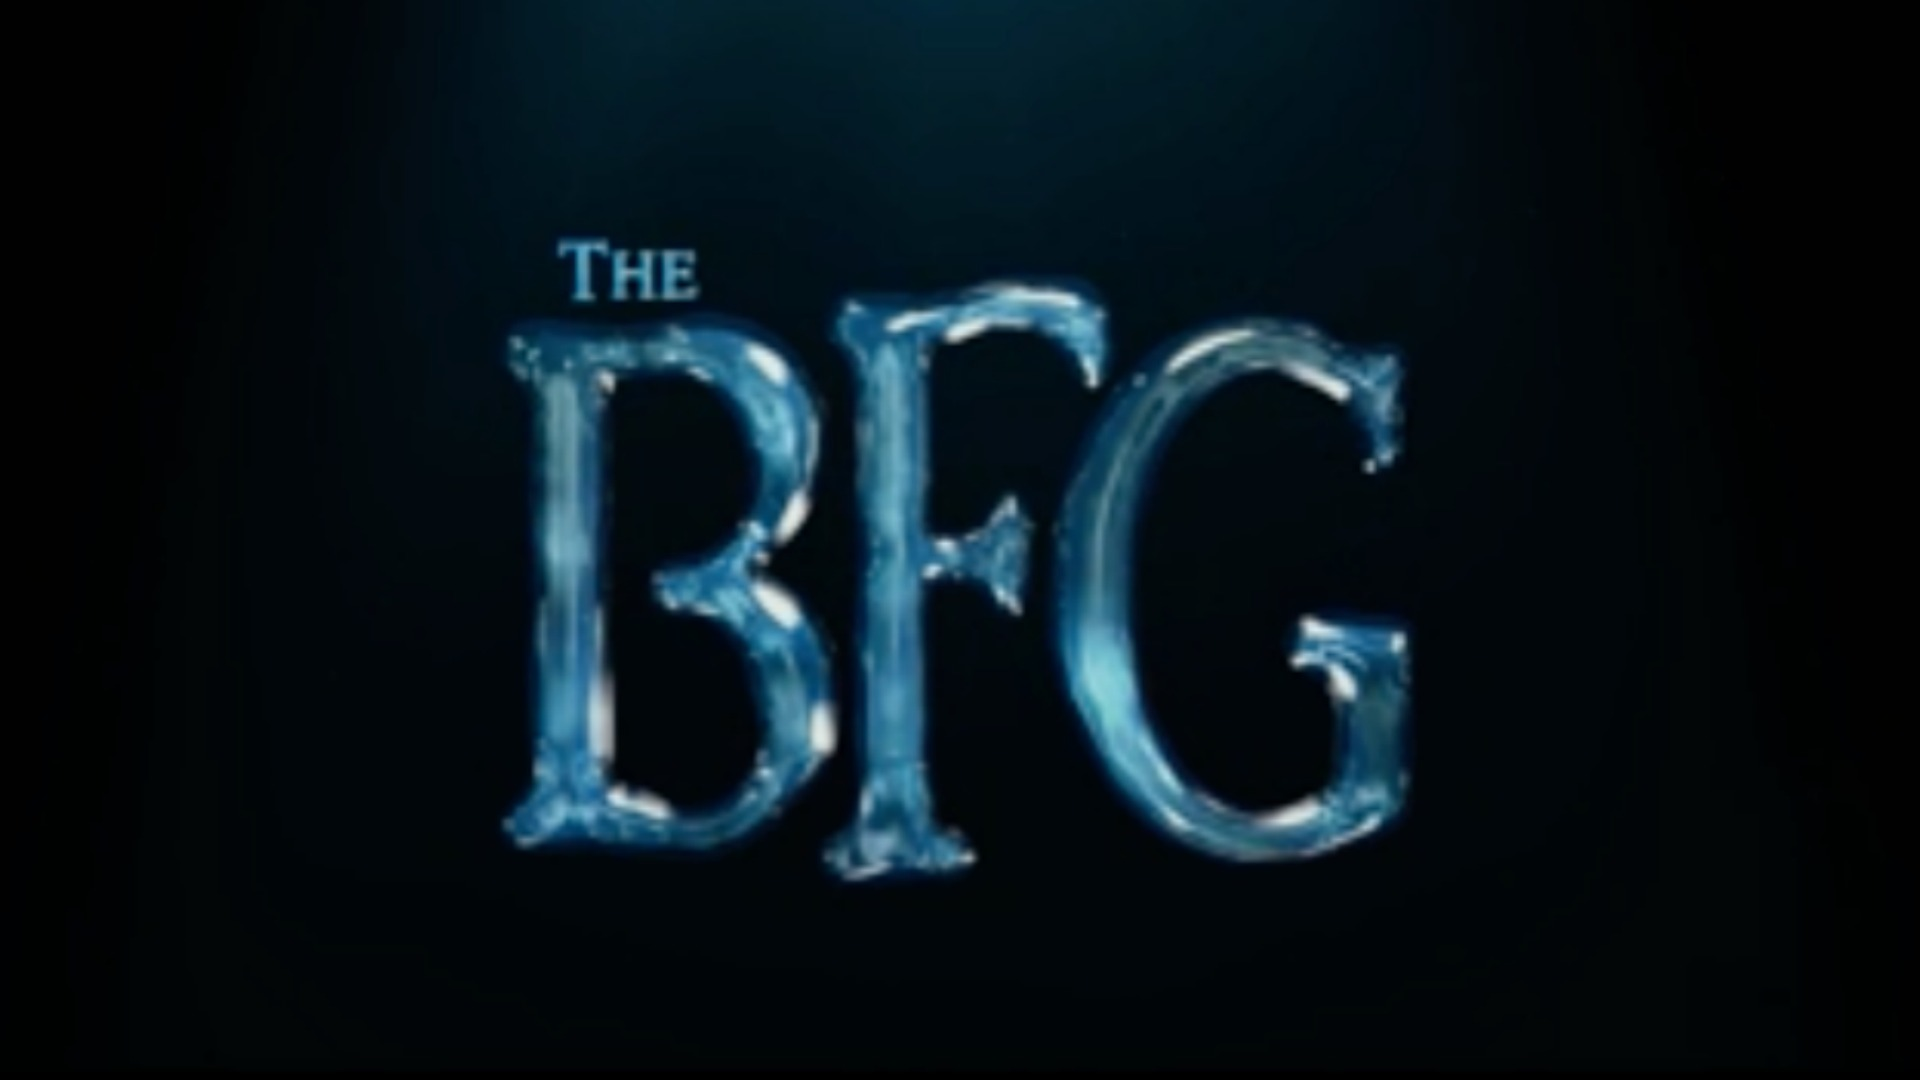 roald-dahl-the-bfg-film-trailer